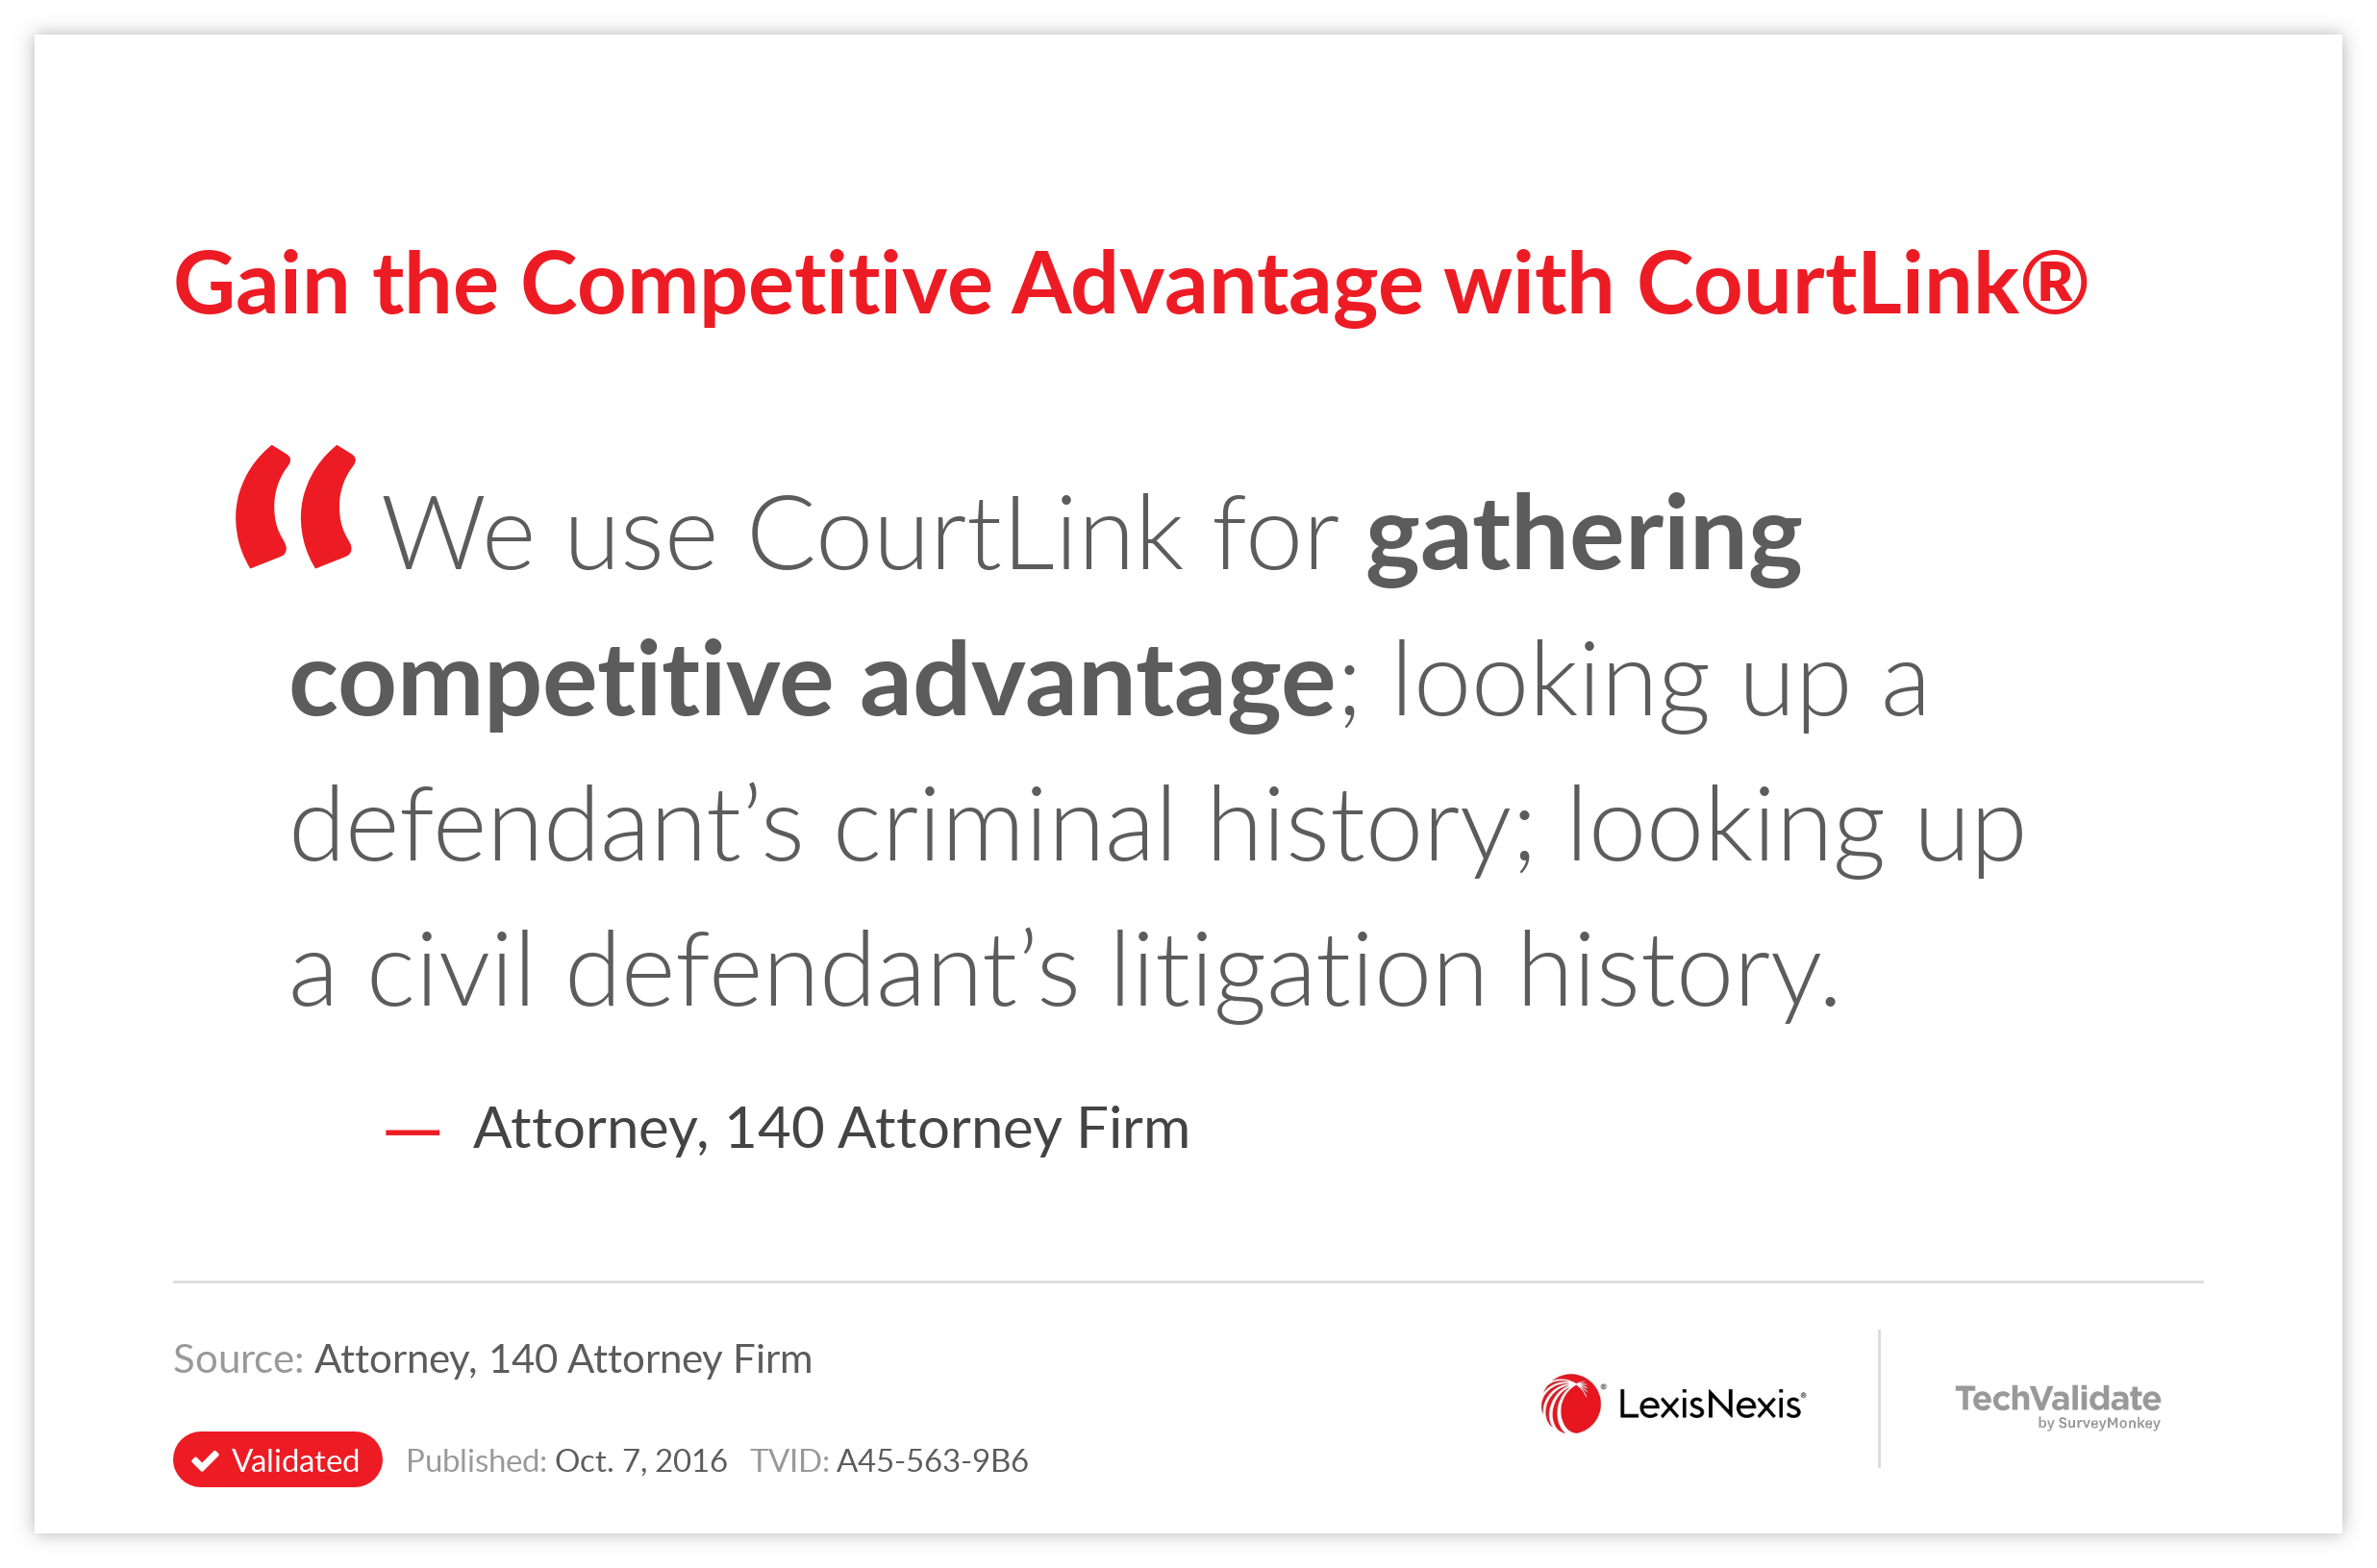 Gain the Competitive Advantage with CourtLink(R)